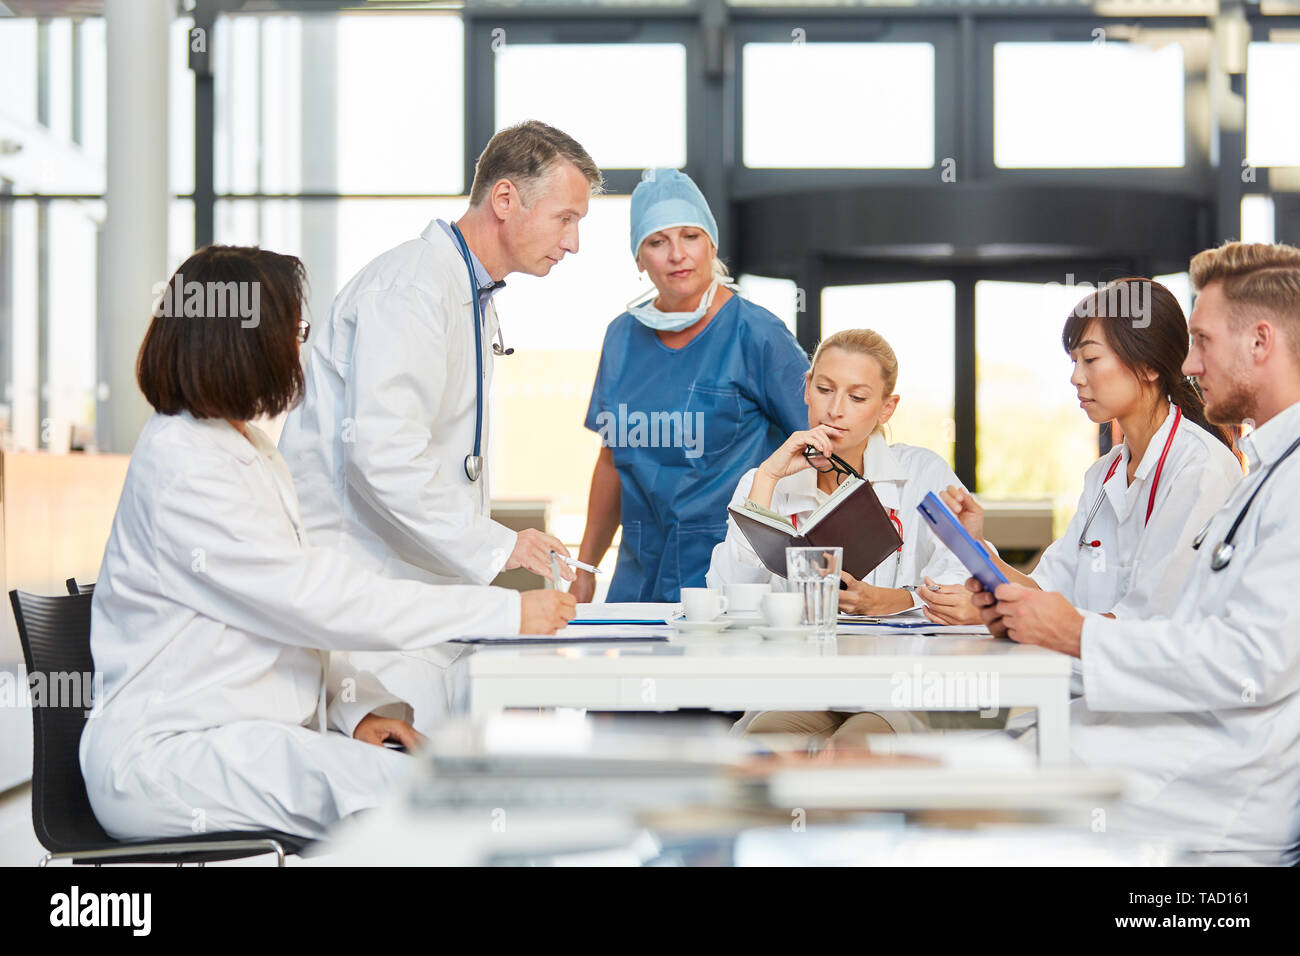 Hospital medical team scheduling with calendar in a meeting - Stock Image